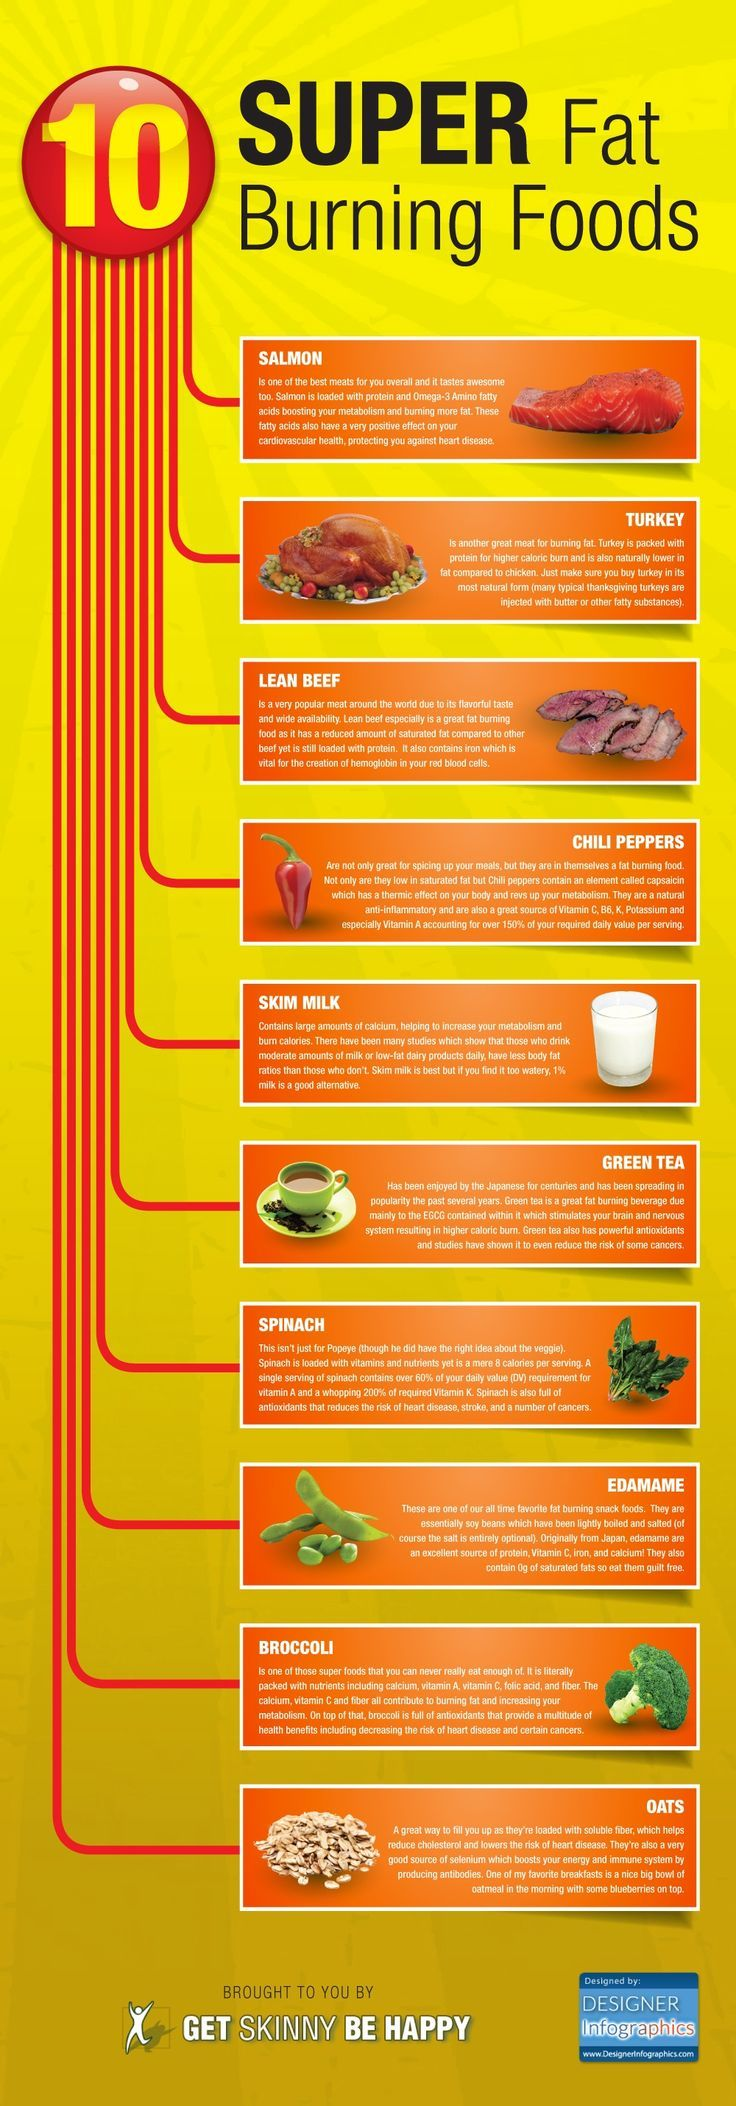 See more here ► https://www.youtube.com/watch?v=fyYVMDPMa68 Tags: fastest way to lose weight in a week, fastest way to lose weight, fastest and healthiest way to lose weight - 10 Super #FatBurning #Foods #Infographic